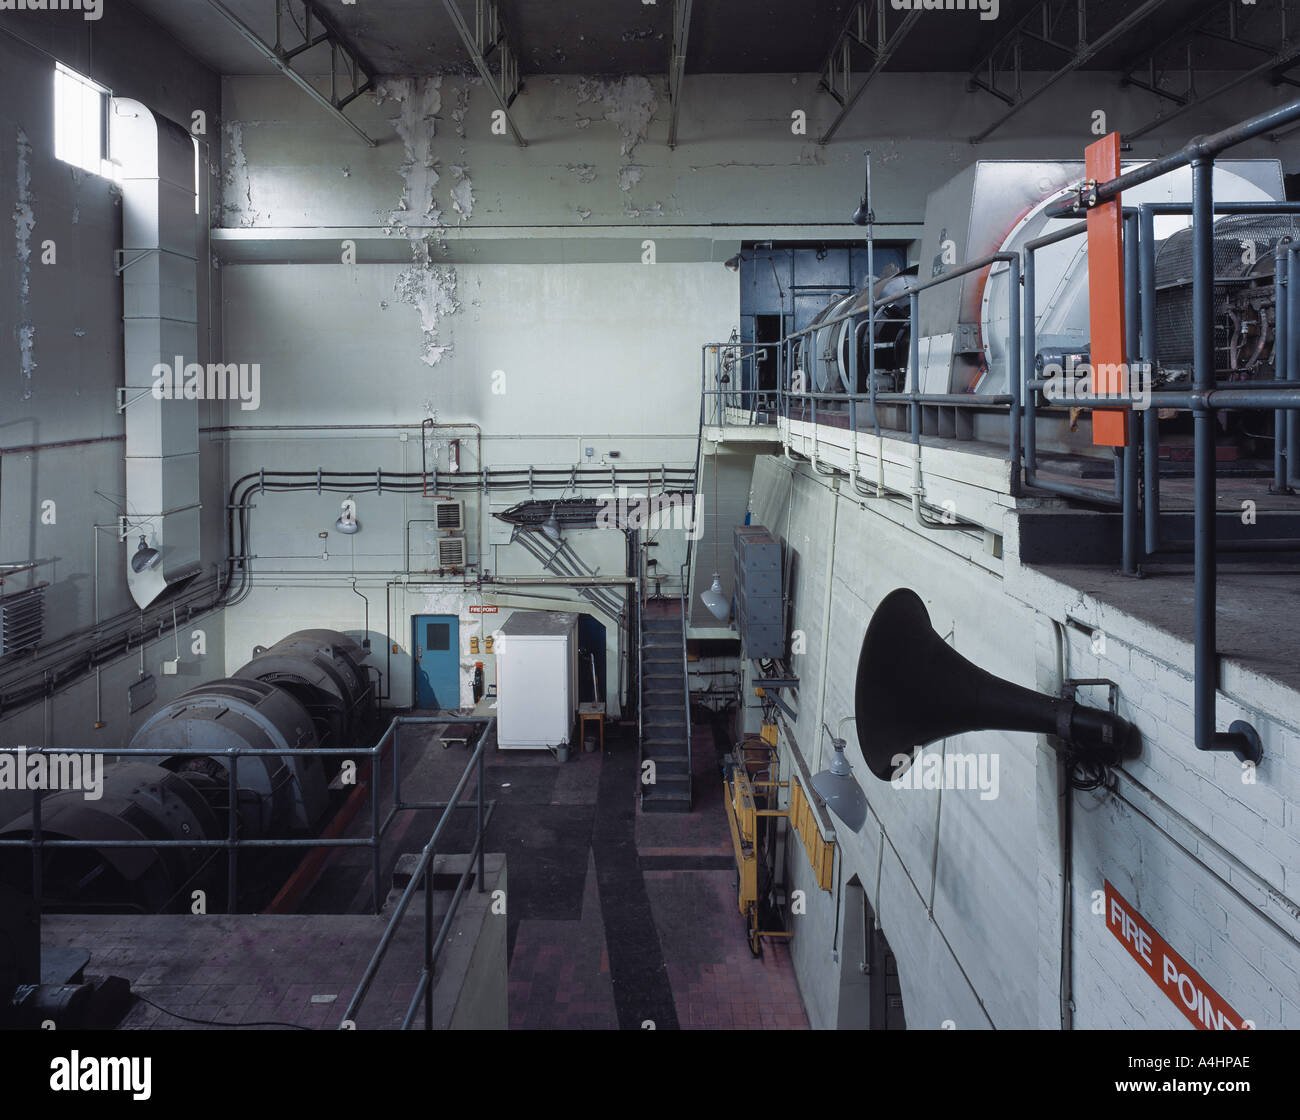 R133 TRANSONIC WIND TUNNEL - Stock Image